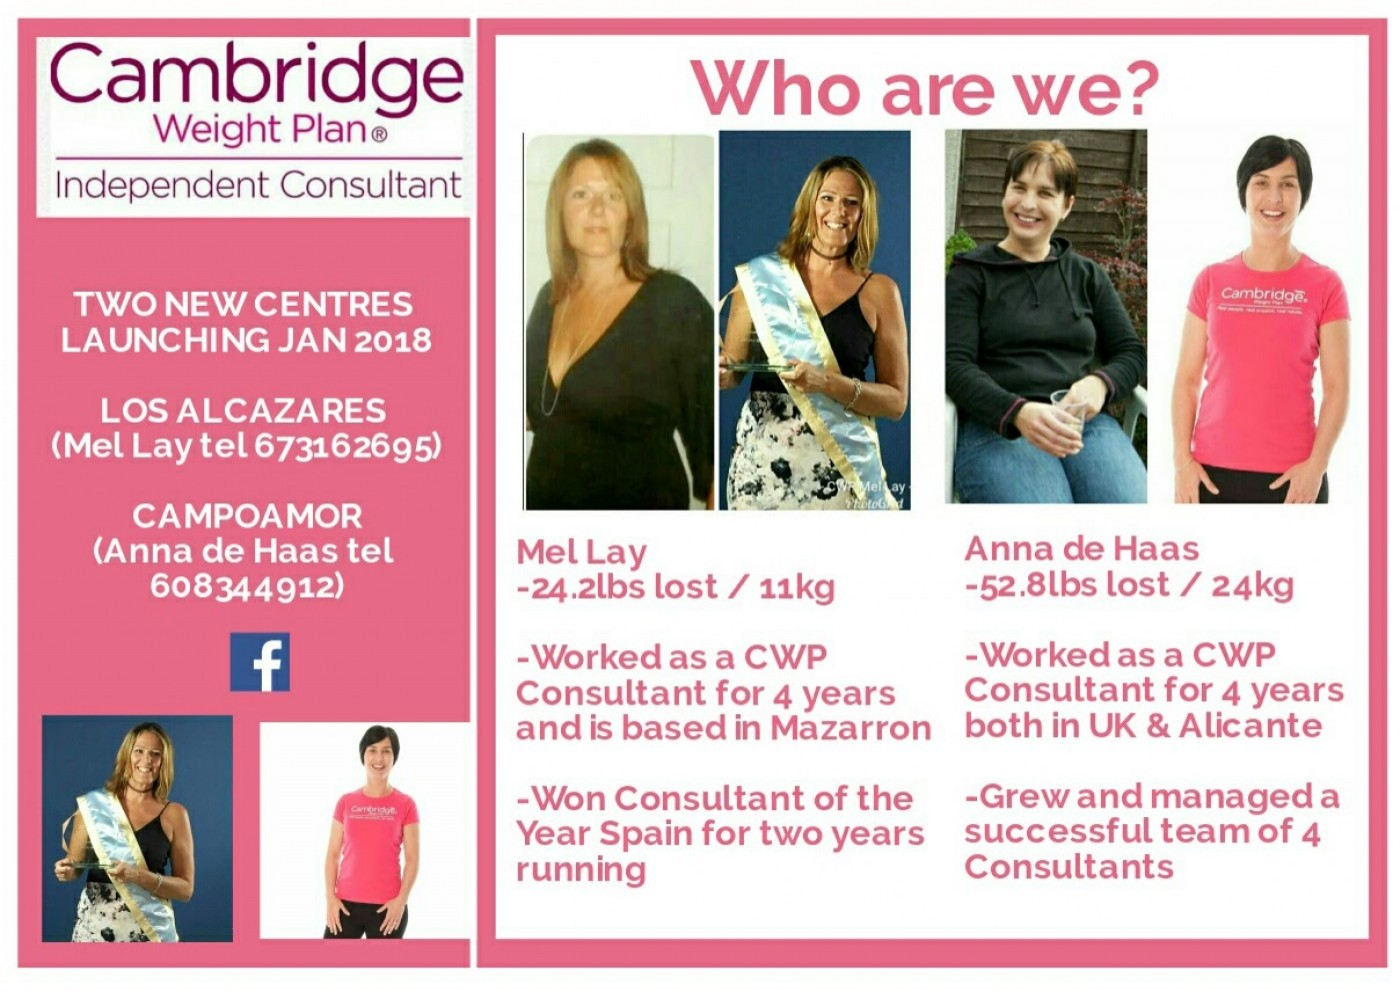 Cambridge Weight Plan Consultant in Elche and Orihuela areas